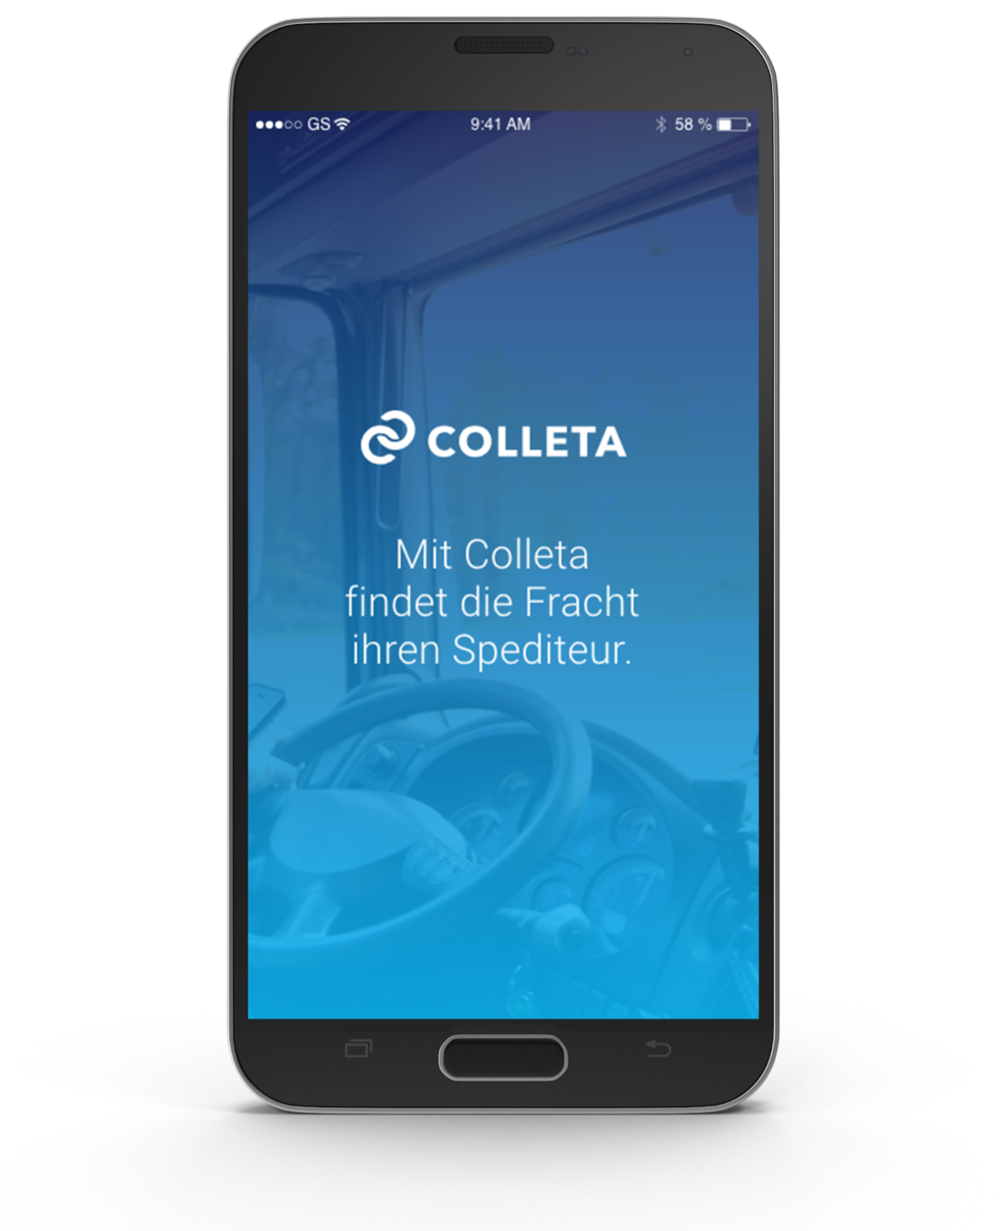 colleta-apple-ios-app.png